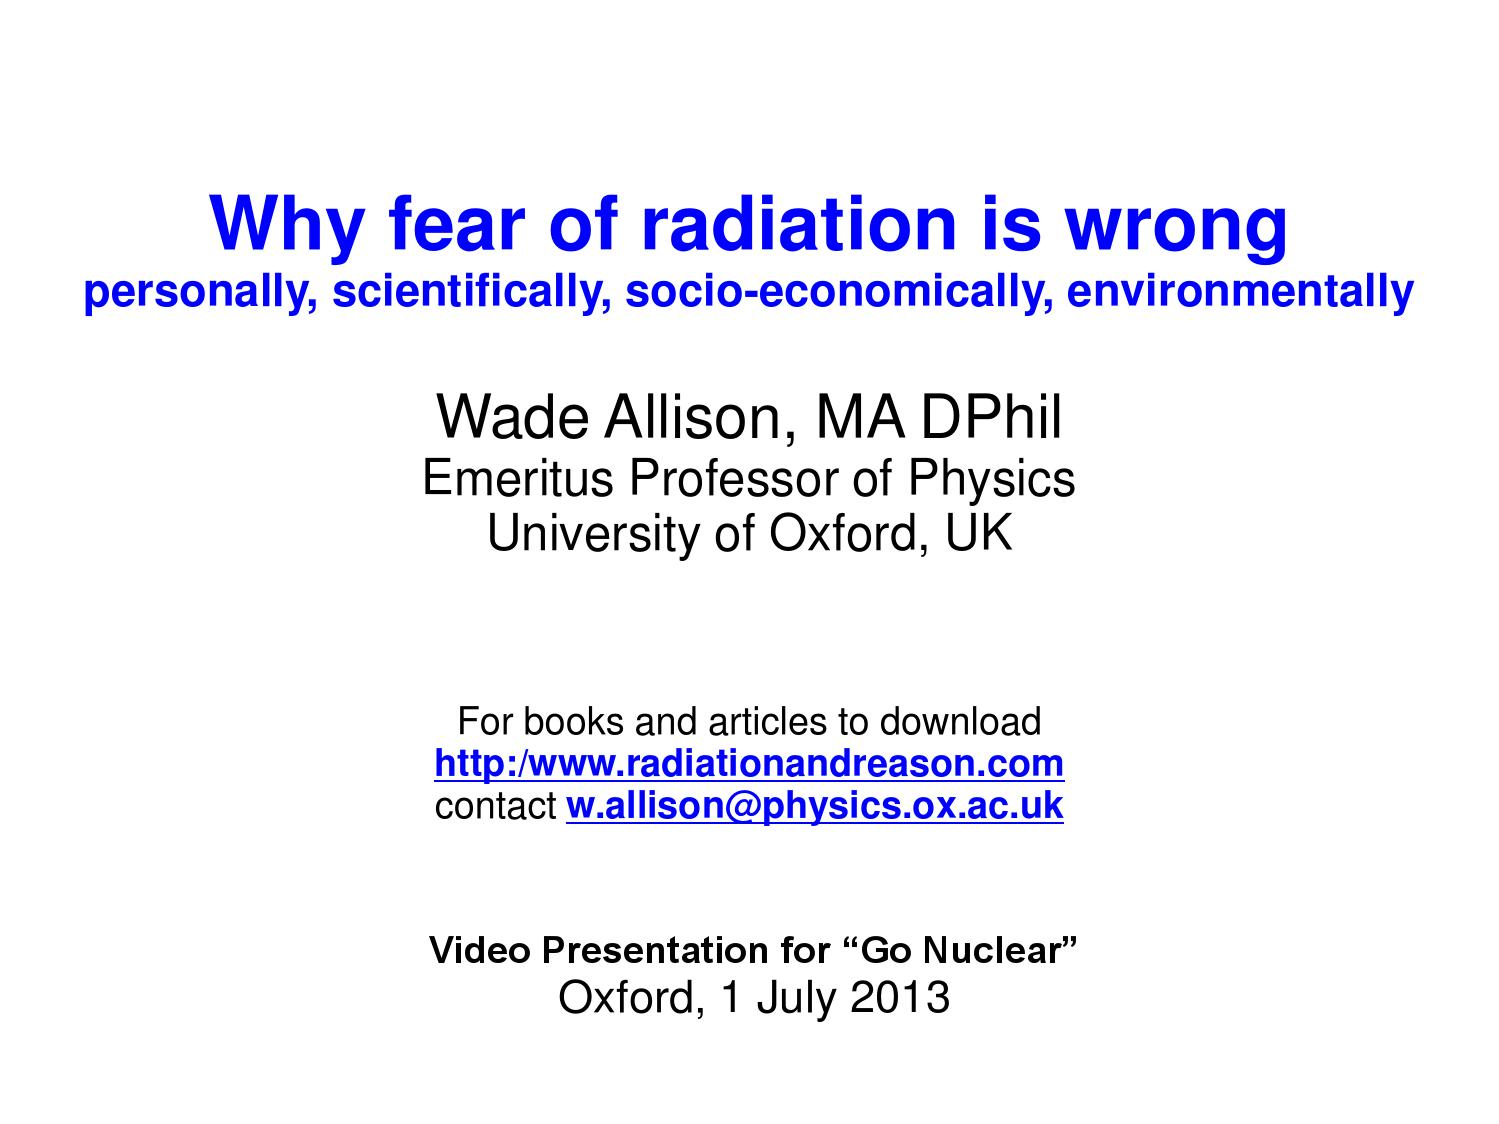 Why Fear Of Radiation Is Wrong Personally Scientifically